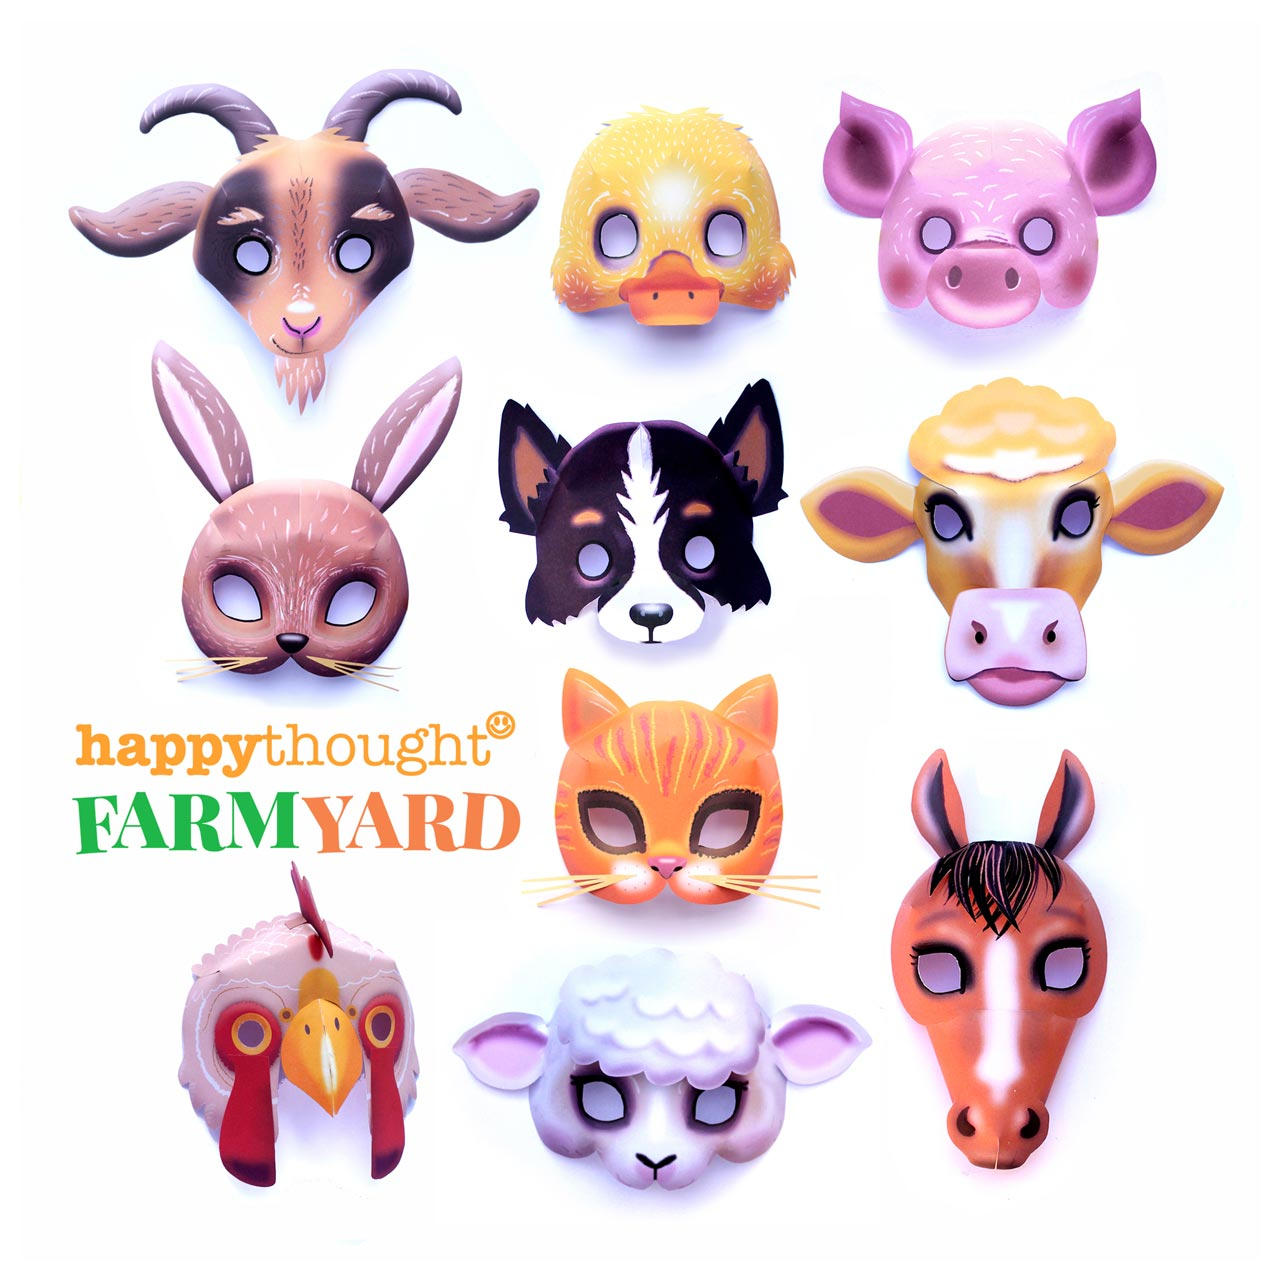 10 stunning printable farmyard animal mask templates.jp